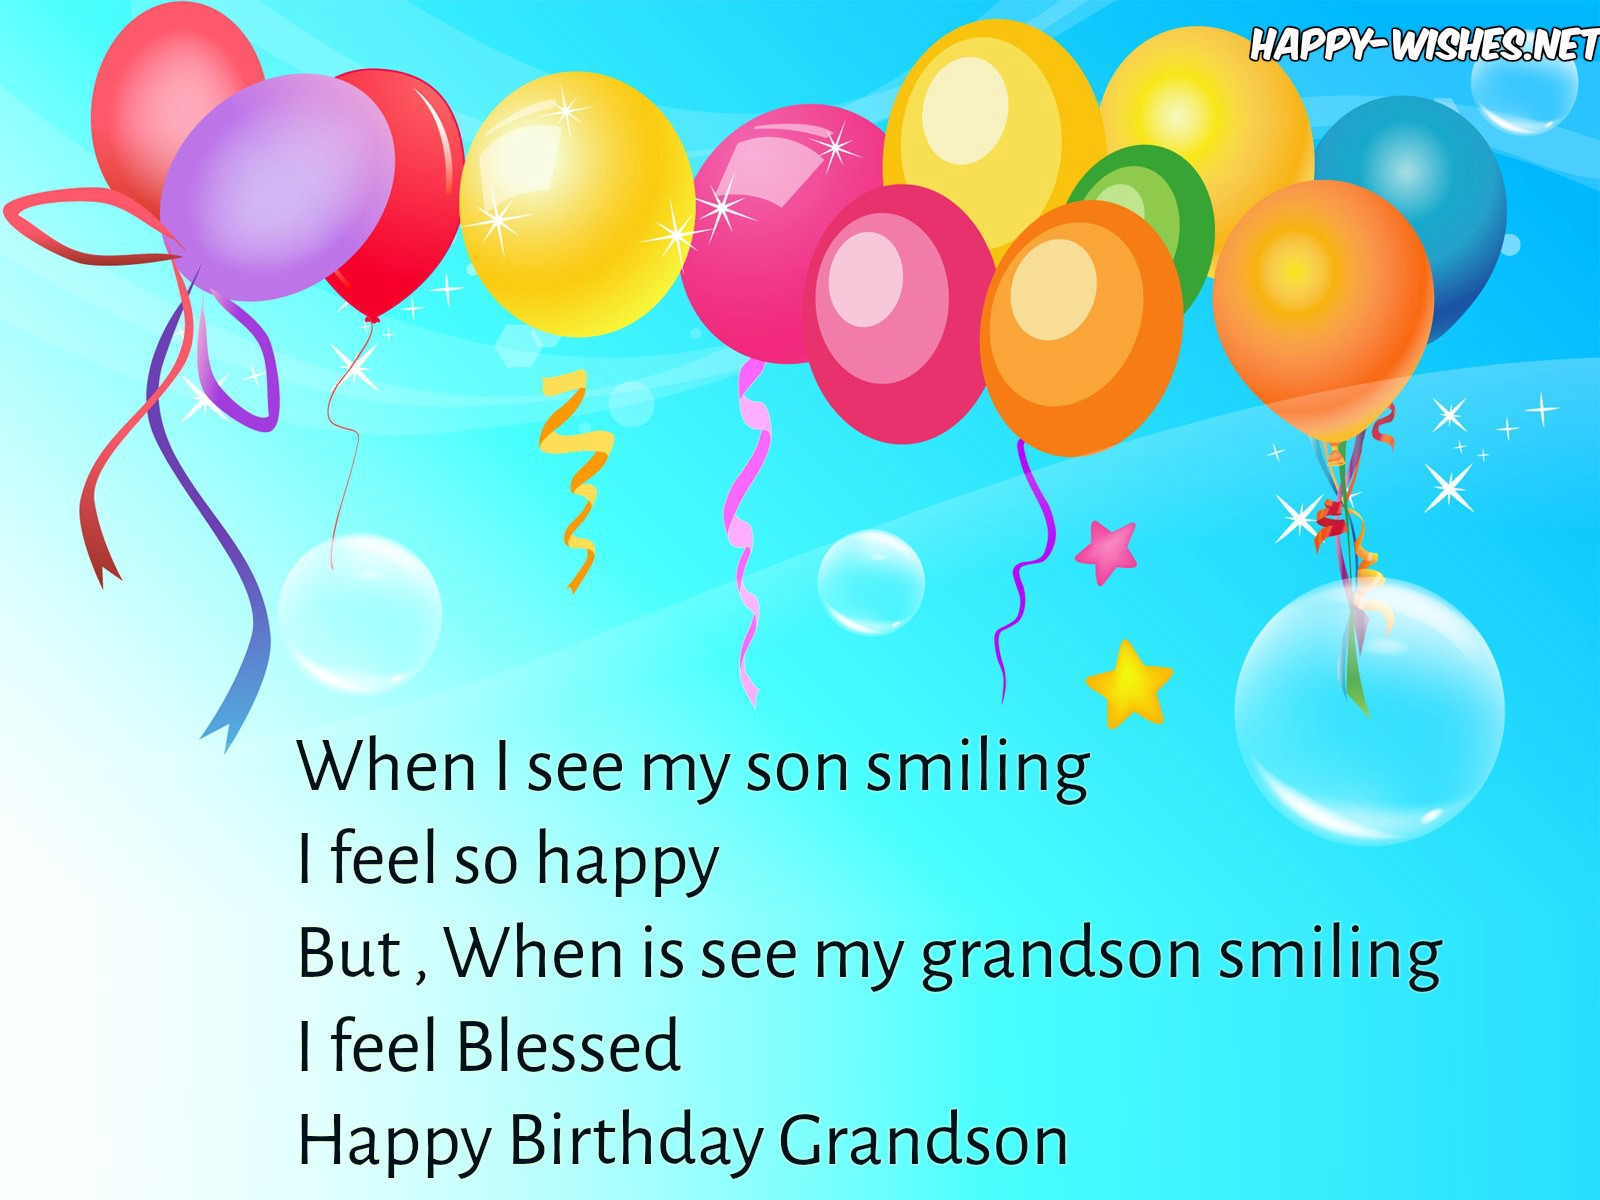 birthday message for grandson with images ; 4HappyBirthdaywishesforgrandson-compressed